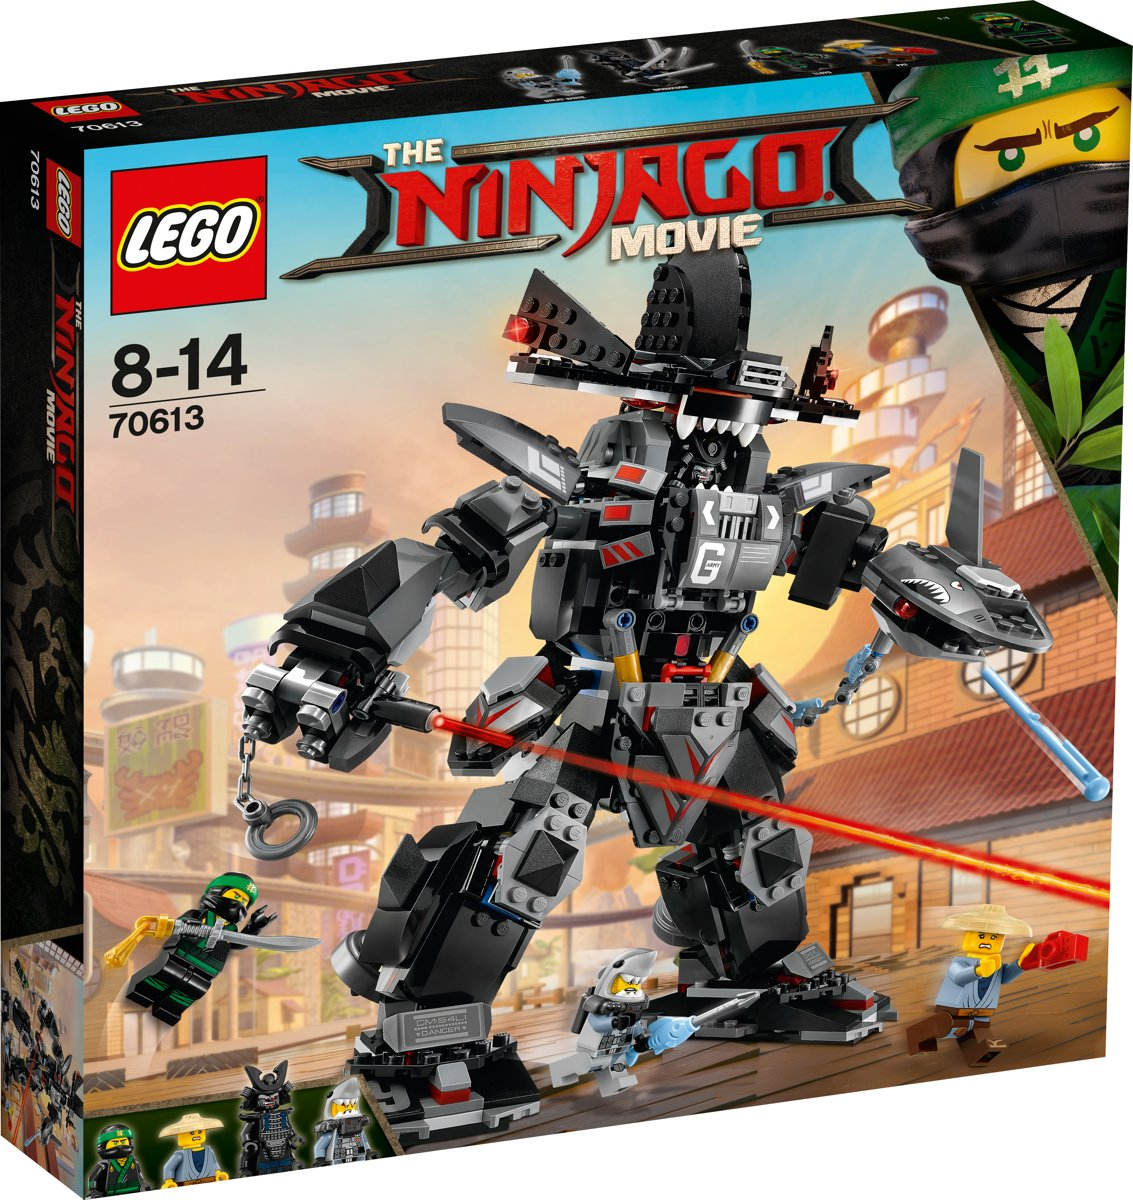 LEGO NINJAGO Movie Garma Mecha Man - 70613